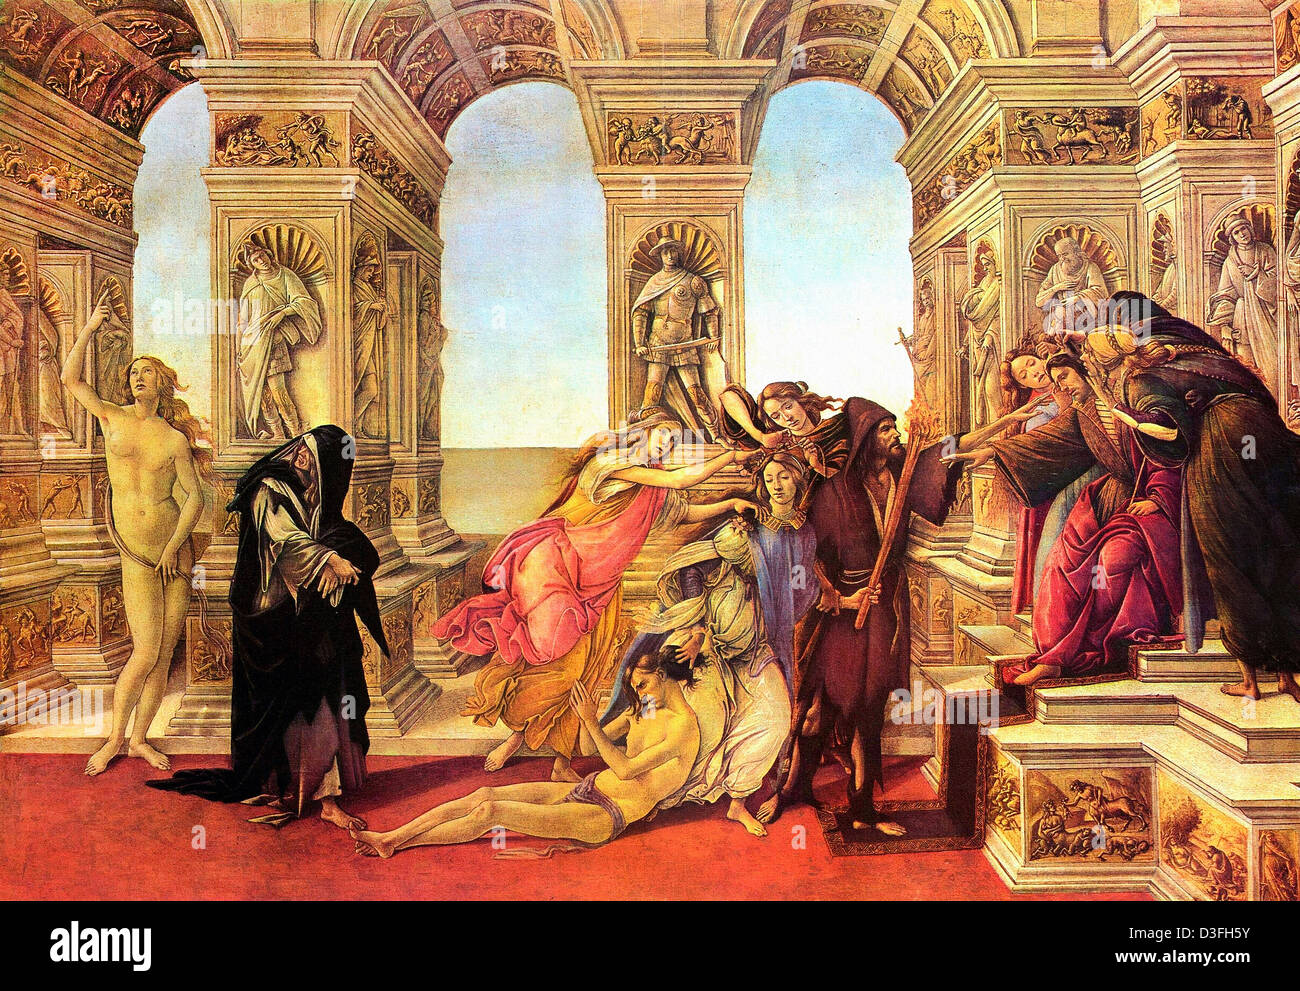 Sandro Botticelli, Calumny of Apelles 1495 Tempera on panel. Uffizi, Florence - Stock Image